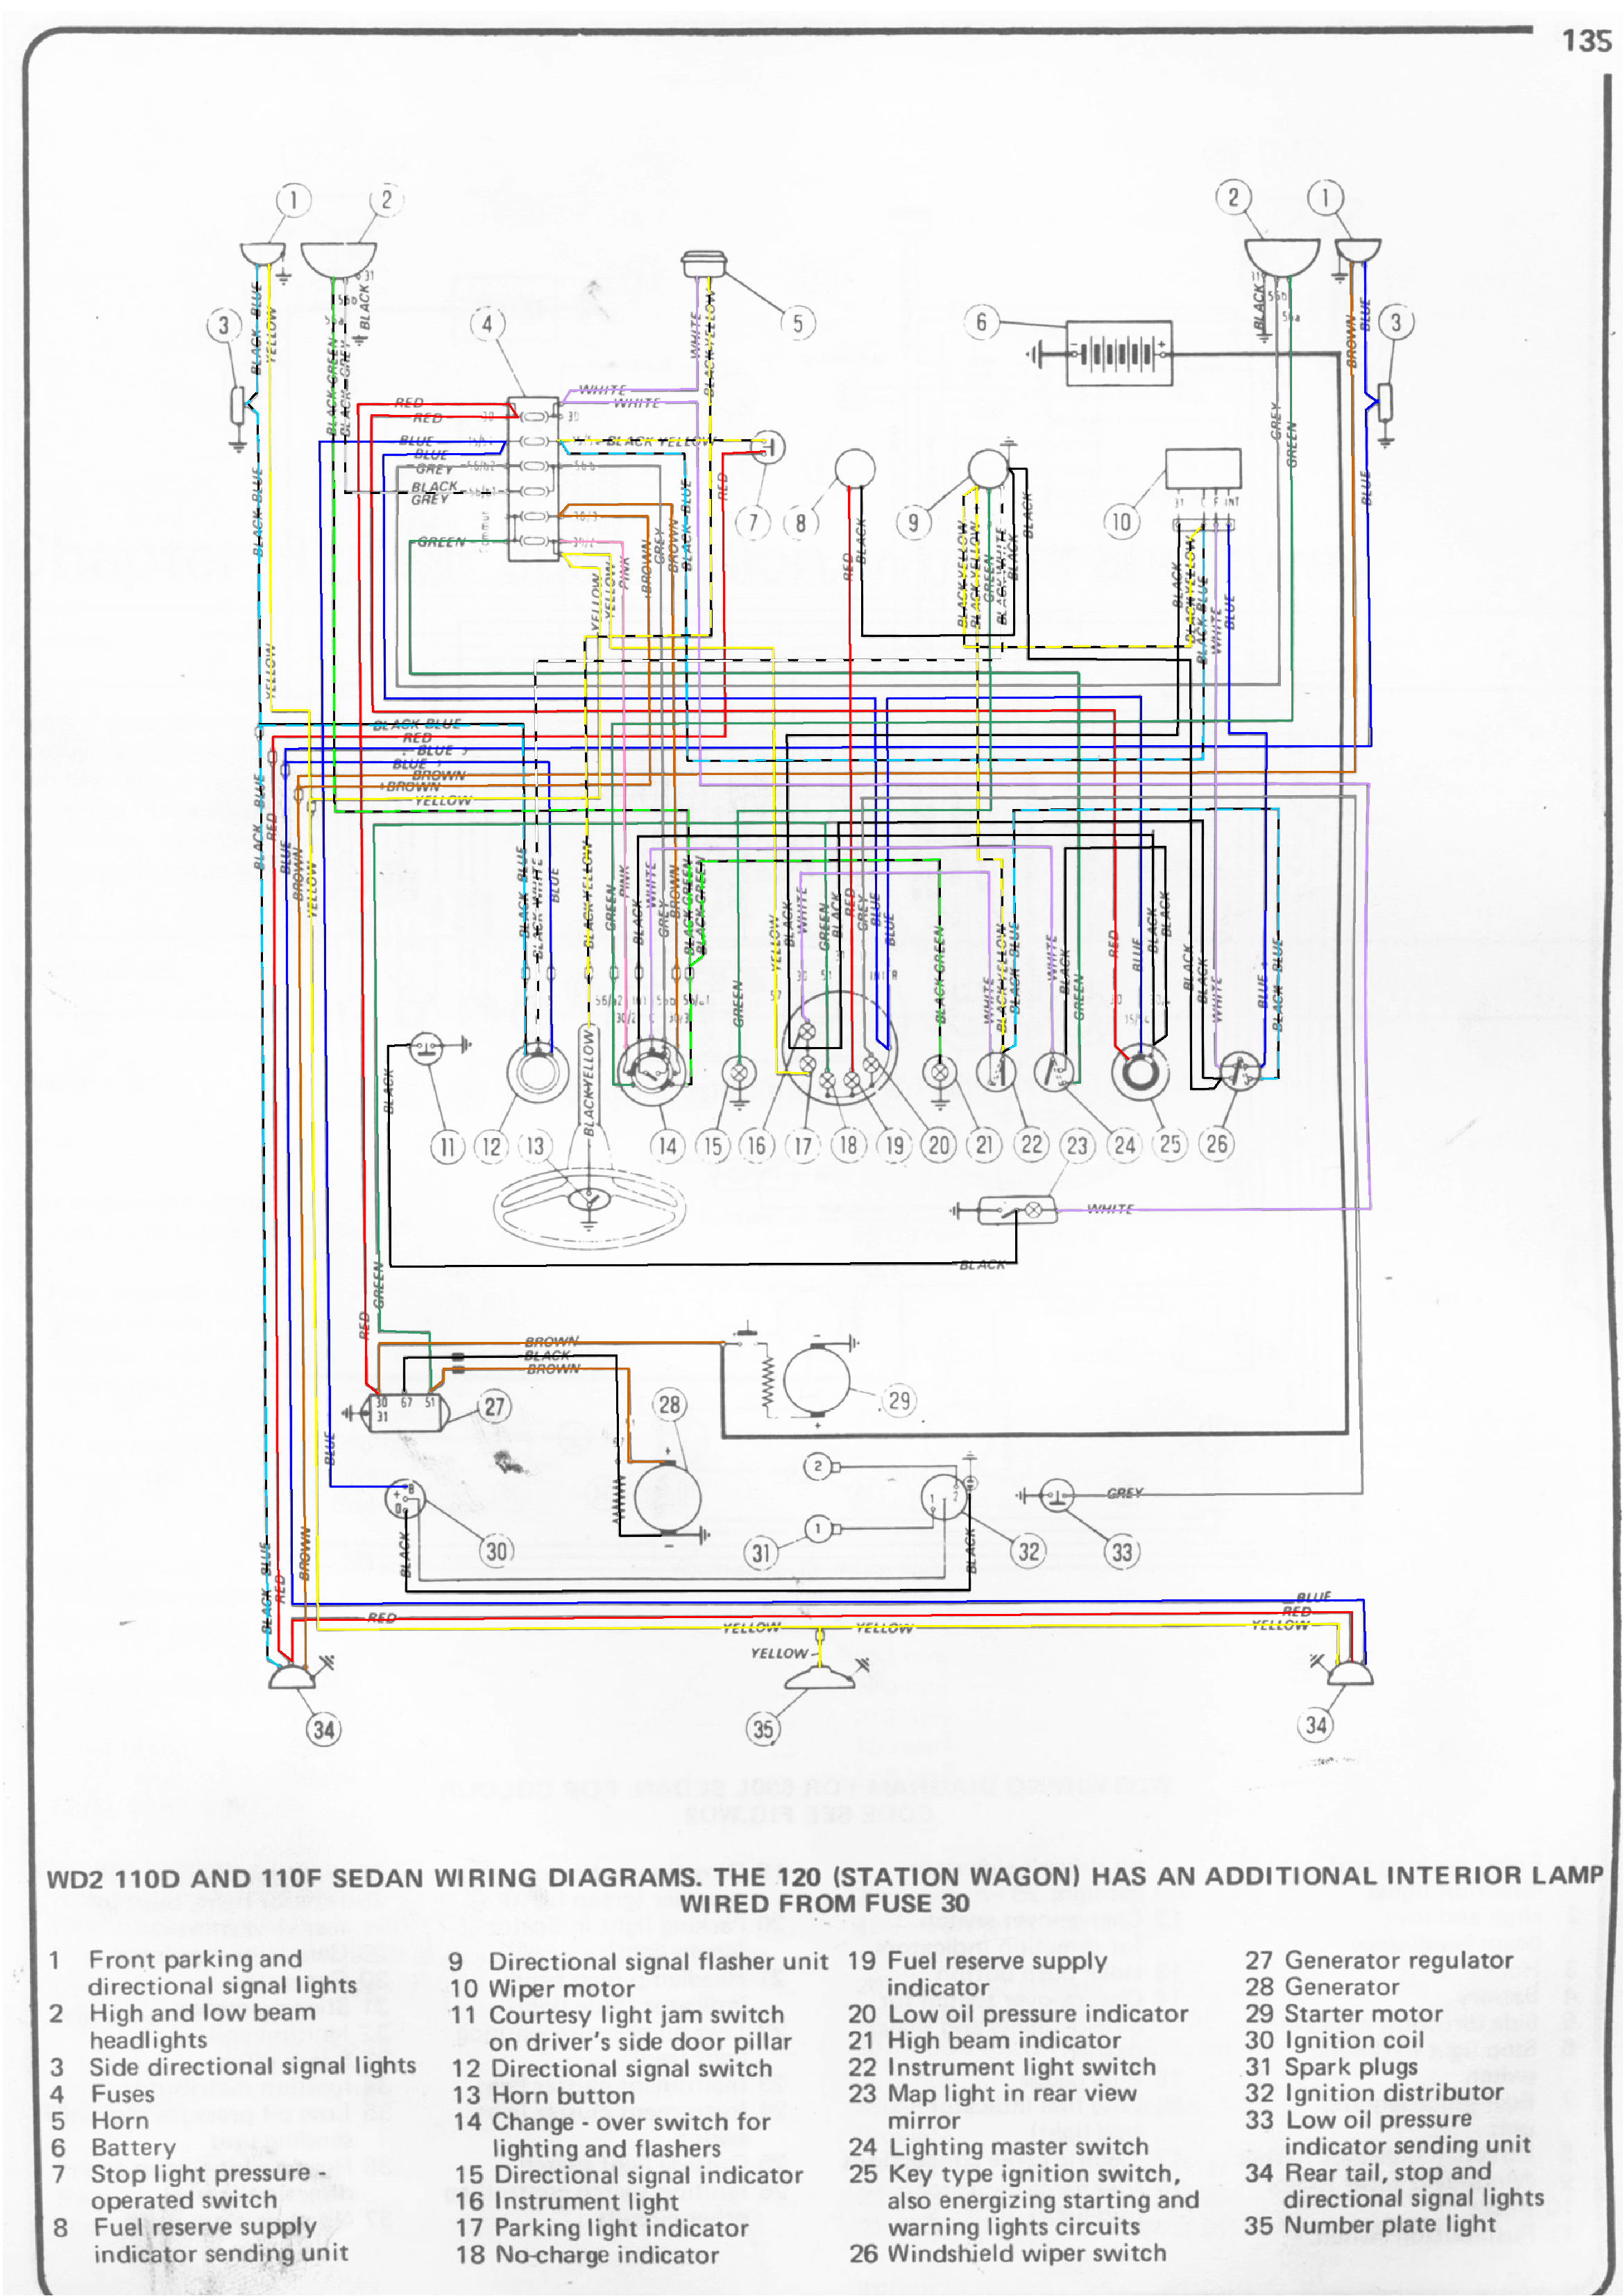 wiring diagram 1973 fiat italian reading industrial wiring 73 87 chevy truck wiring harness 1979 corvette wiring diagram